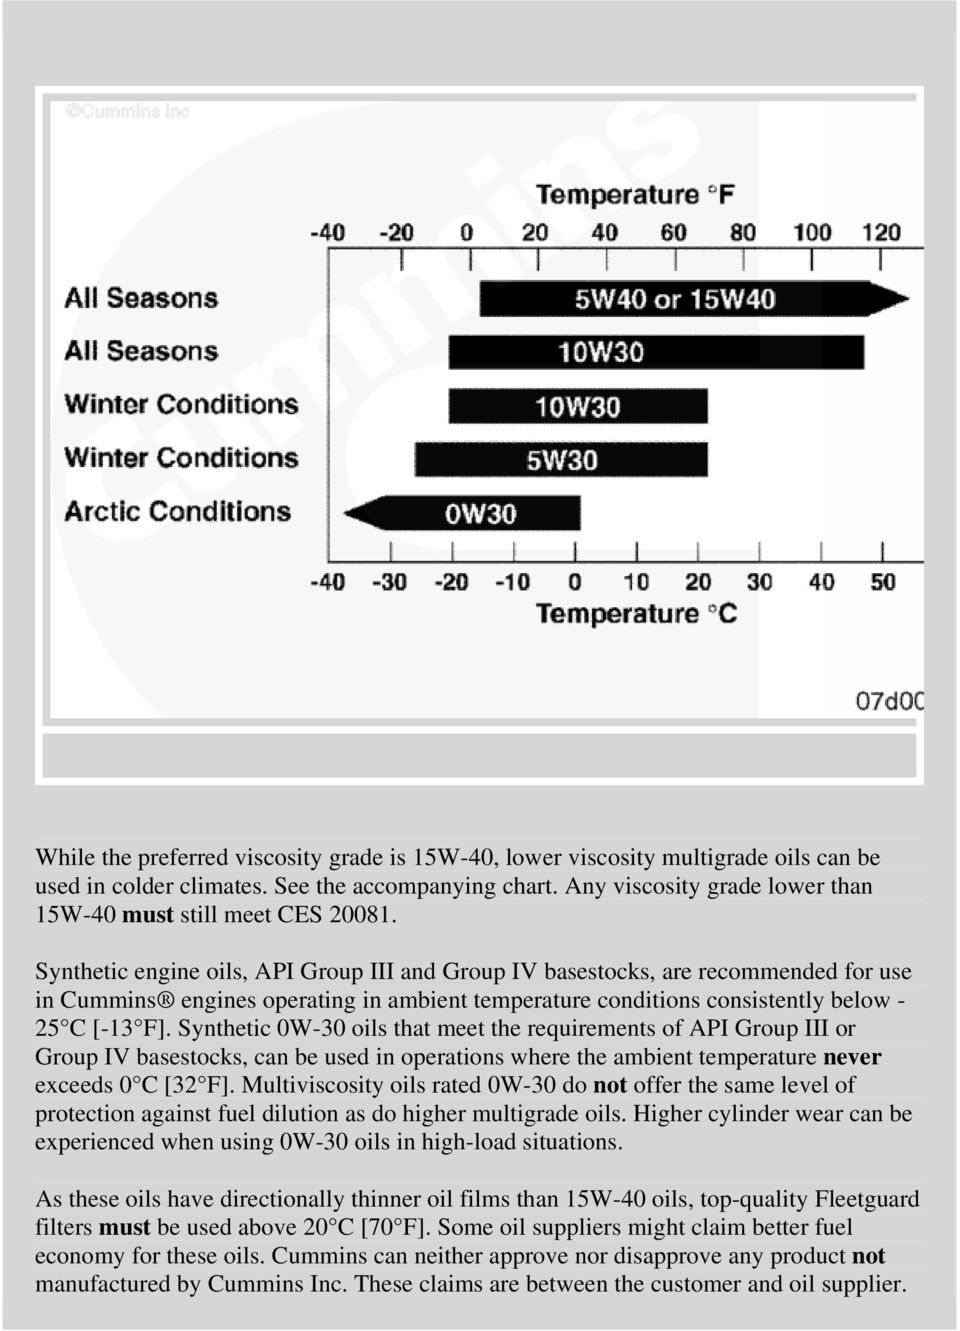 Synthetic engine oils, API Group III and Group IV basestocks, are recommended for use in Cummins engines operating in ambient temperature conditions consistently below - 25 C [-13 F].